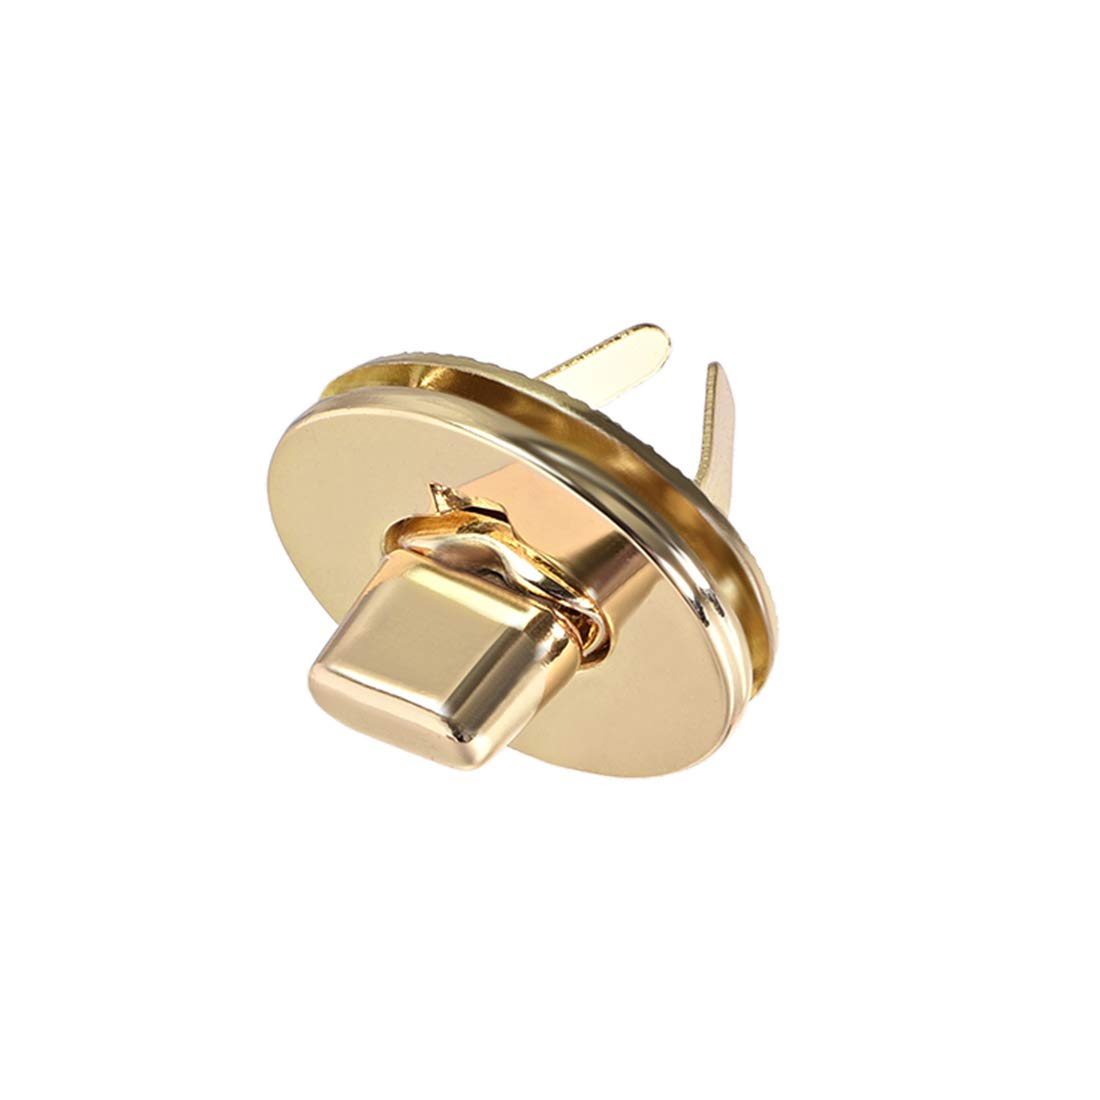 Brussed Brass uxcell 2 Sets Oval Purses Twist Lock 33mm X 19mm Clutches Closures for DIY Bag Making